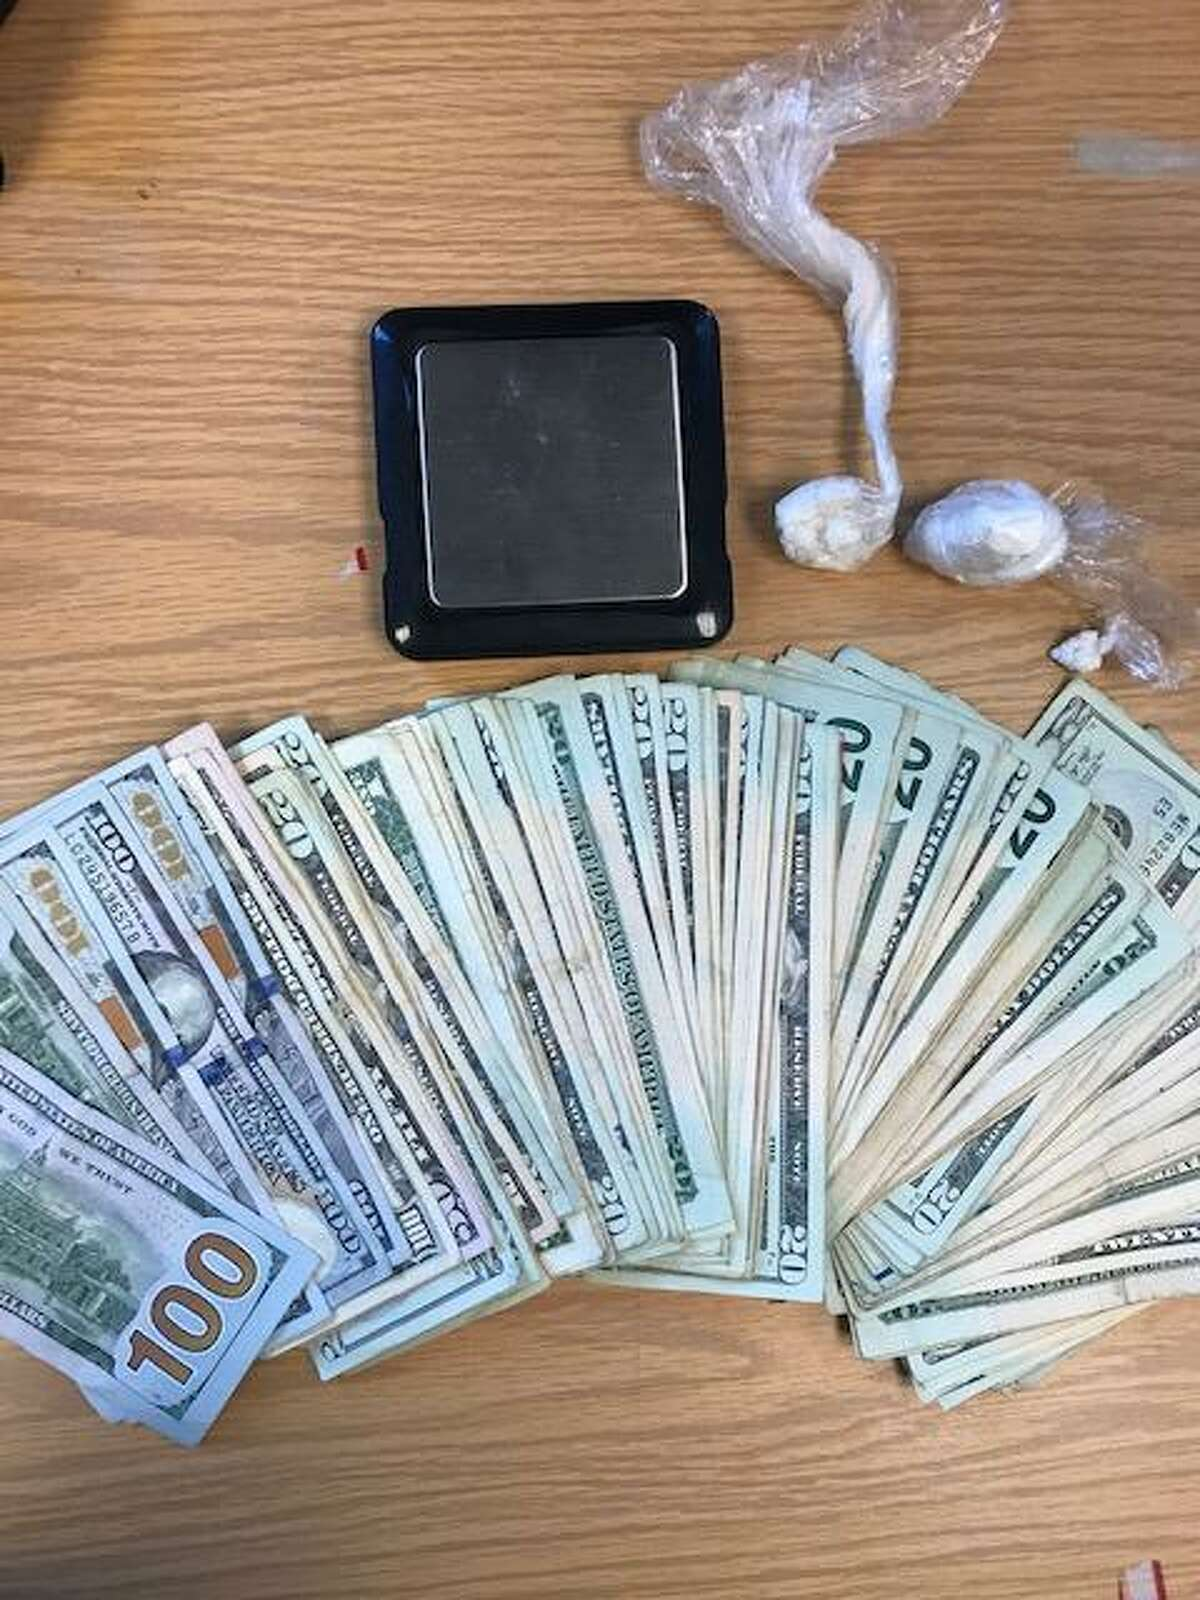 During a search of a New London, Conn., home on Tuesday, July 6, 2021, law enforcement officers seized two loaded handguns, crack cocaine, powder cocaine and $3,252, police said.